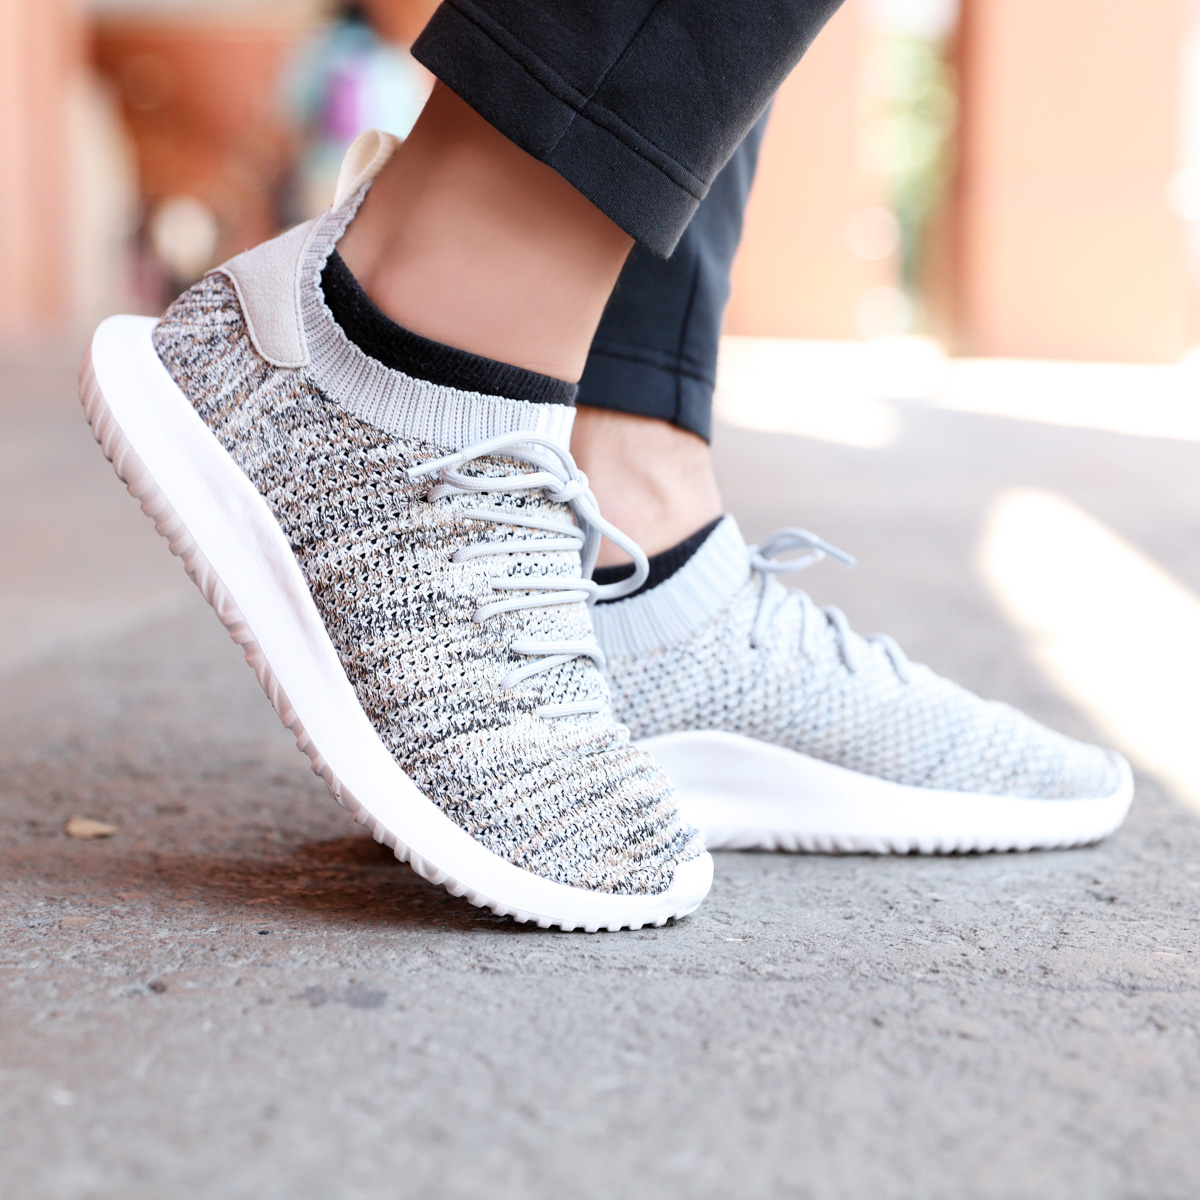 best sneakers 5e458 cf858 adidas Originals TUBULAR SHADOW PK (アディダスオリジナルスチューブラーシャドー PK) Cloud  White/Core Black/Low Desert 18FW-I